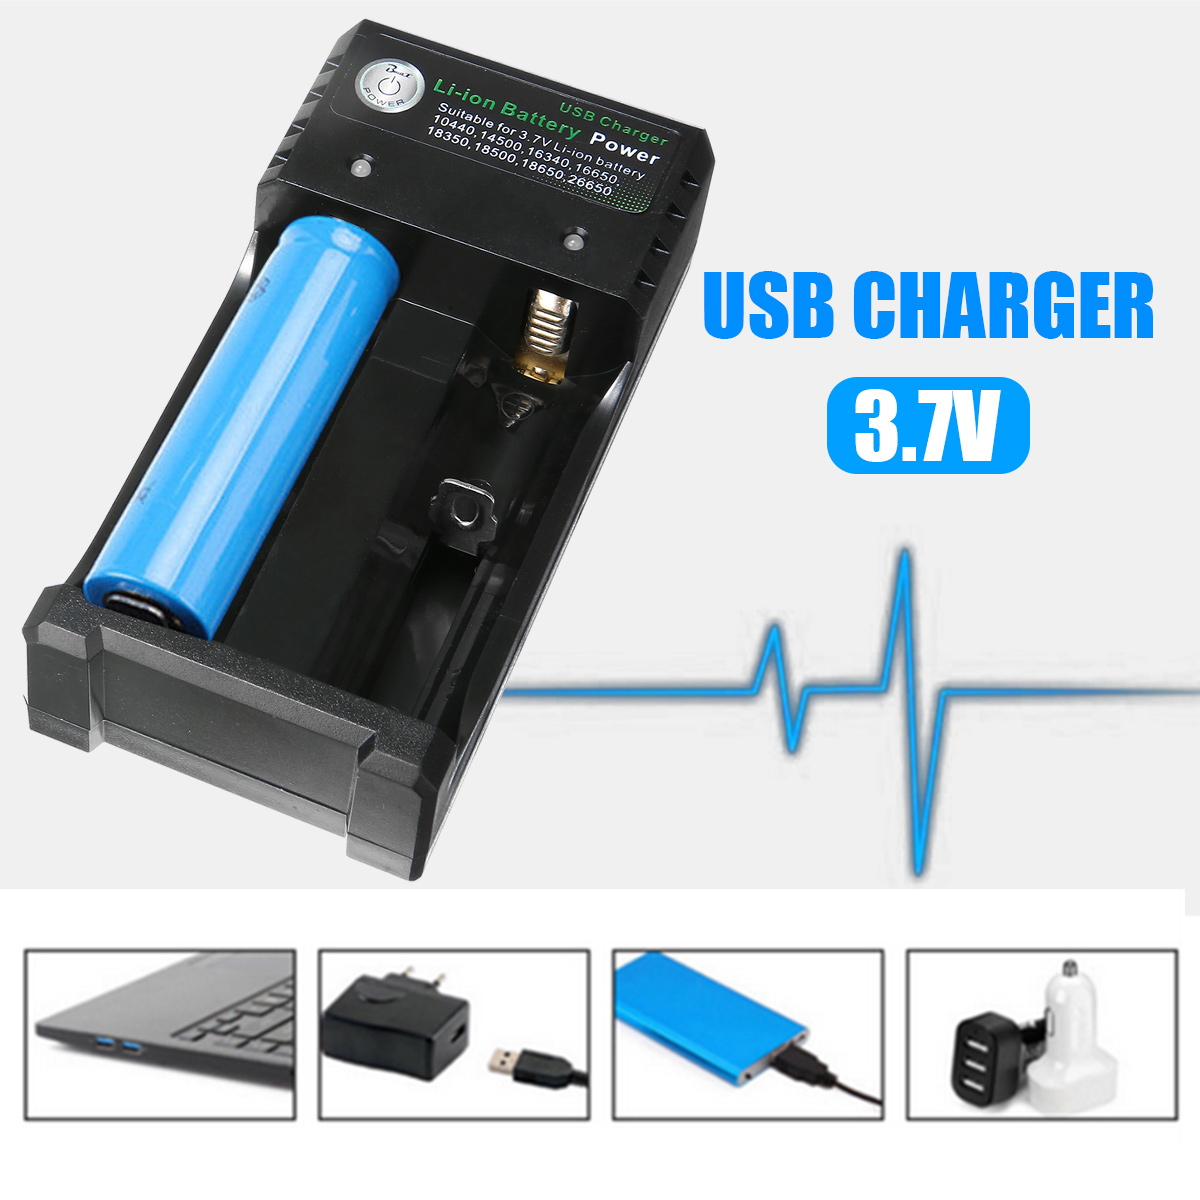 Universal Dual USB Battery Charger Chargering for Batteries 3.7V 18350 Lithium Vape 18650 16340 18500 with USB Cable